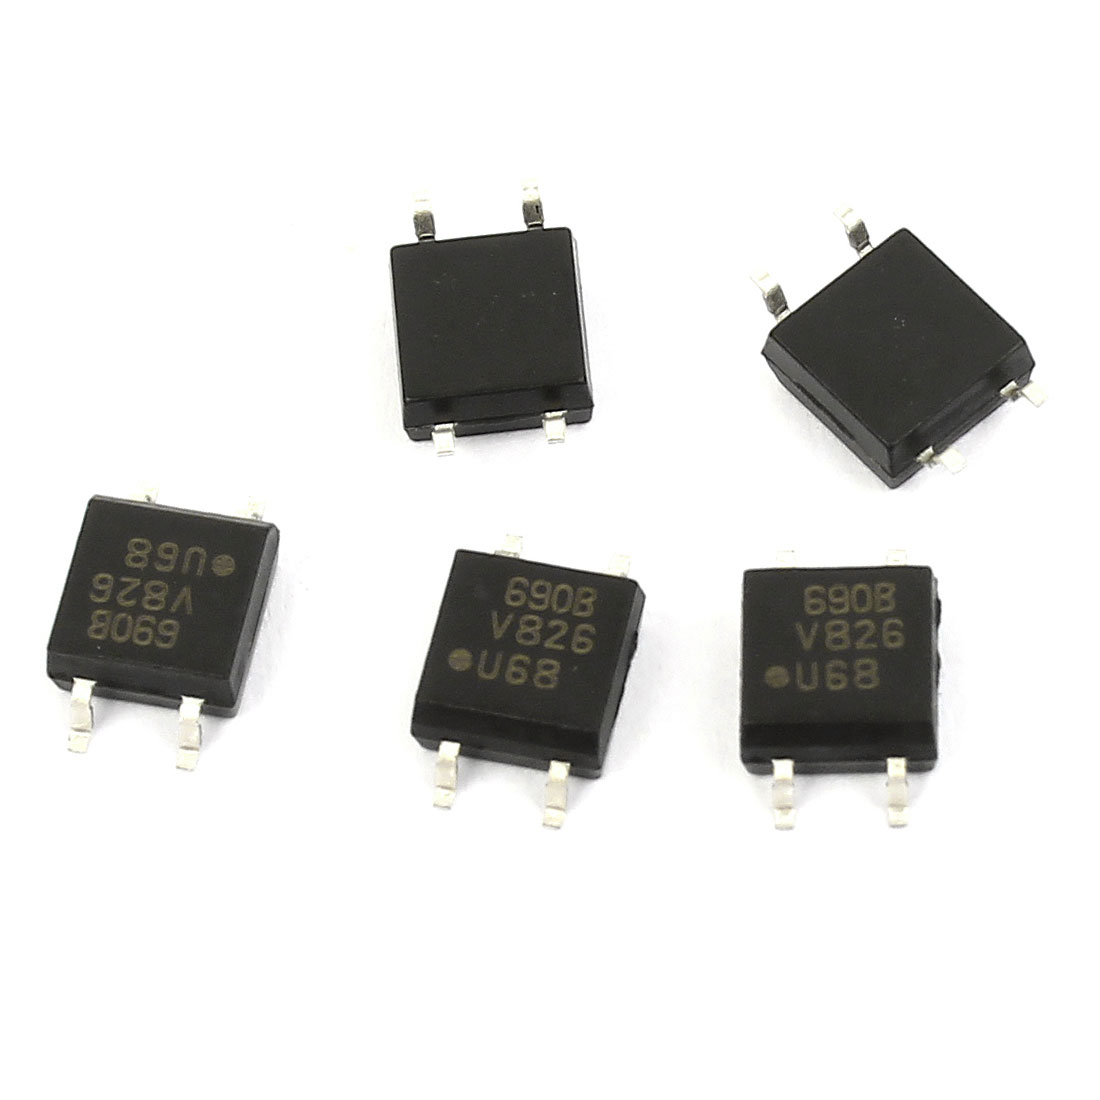 5 Pcs SFH690BT SOP-4 SMD Optocoupler Phototransistor Output IC Chip